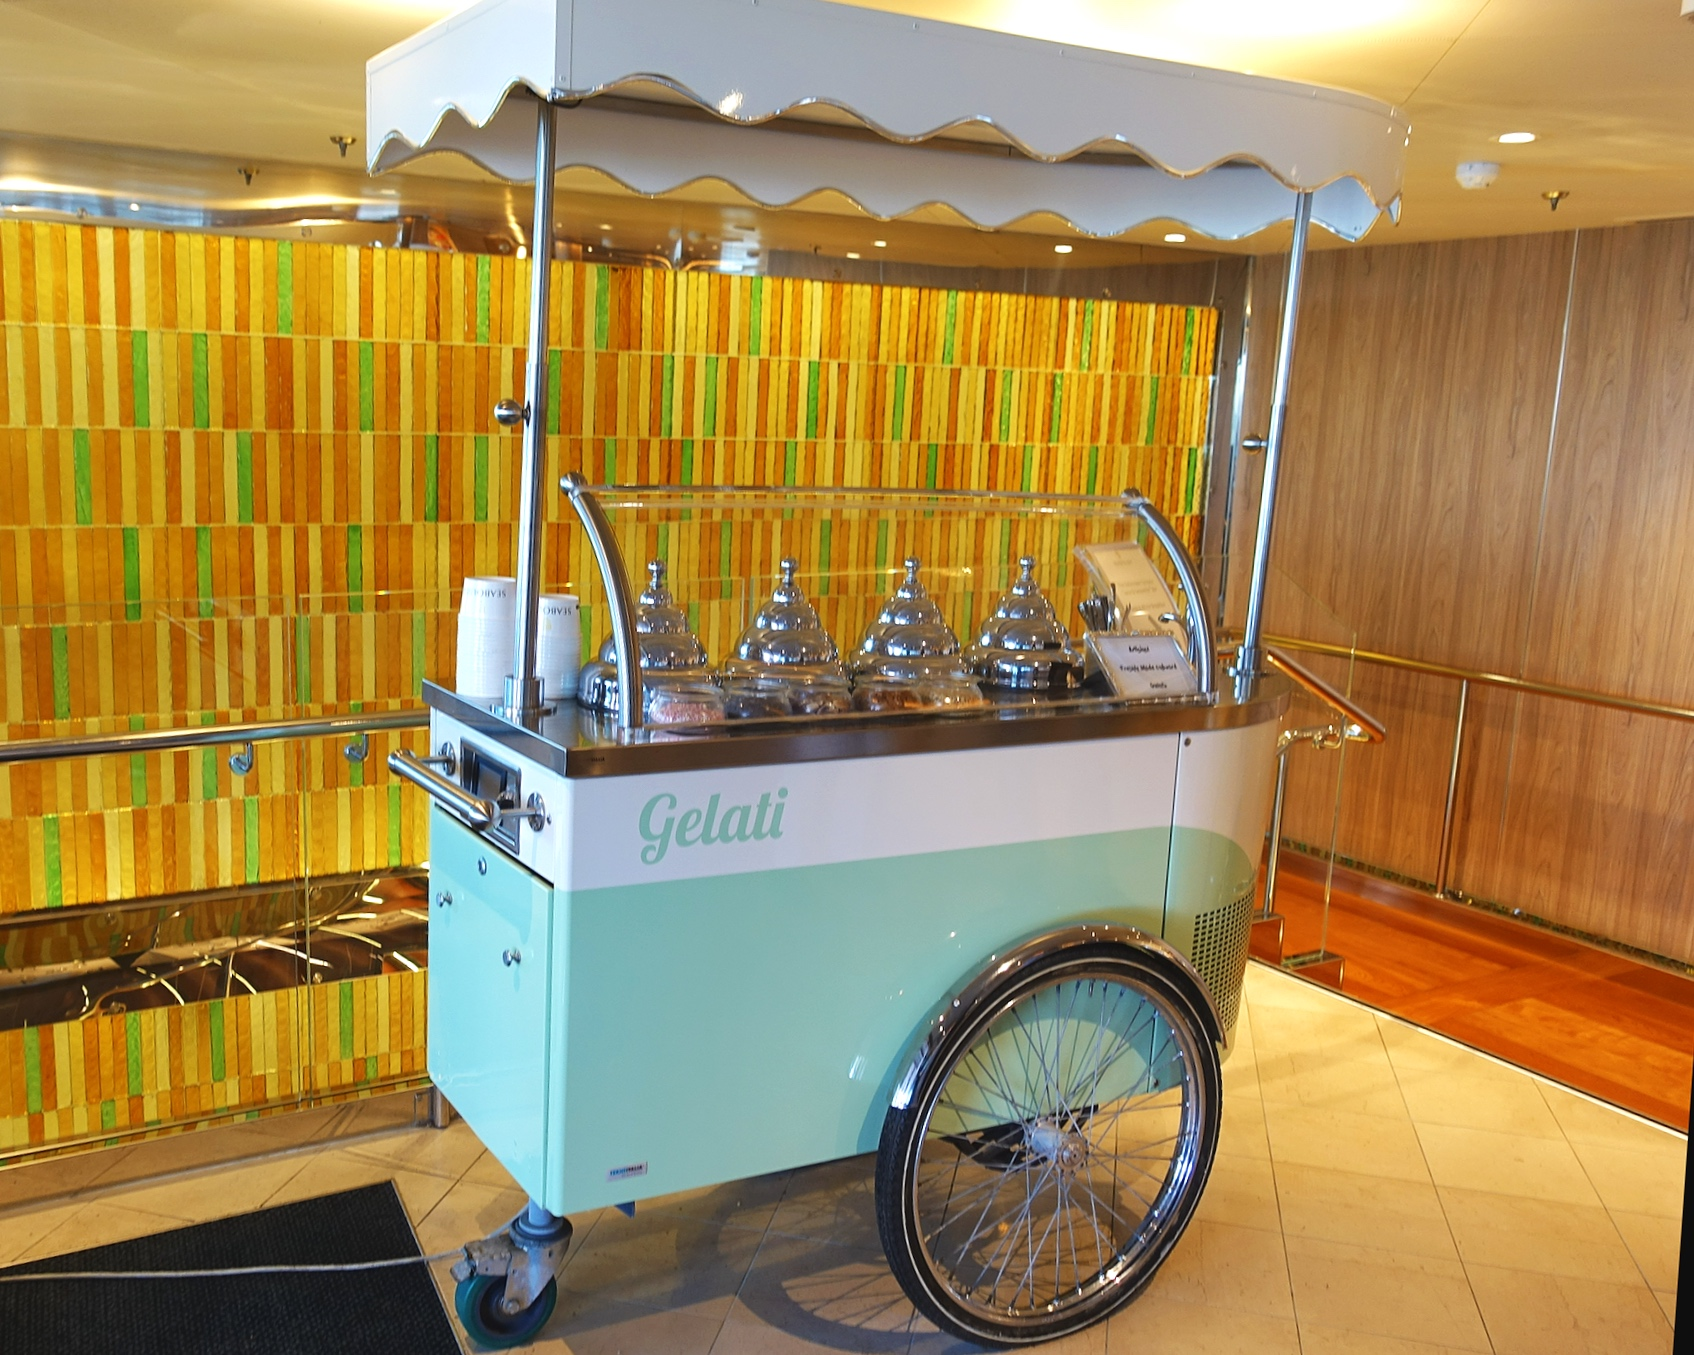 Freshly made gelato cart in the Colonnade.